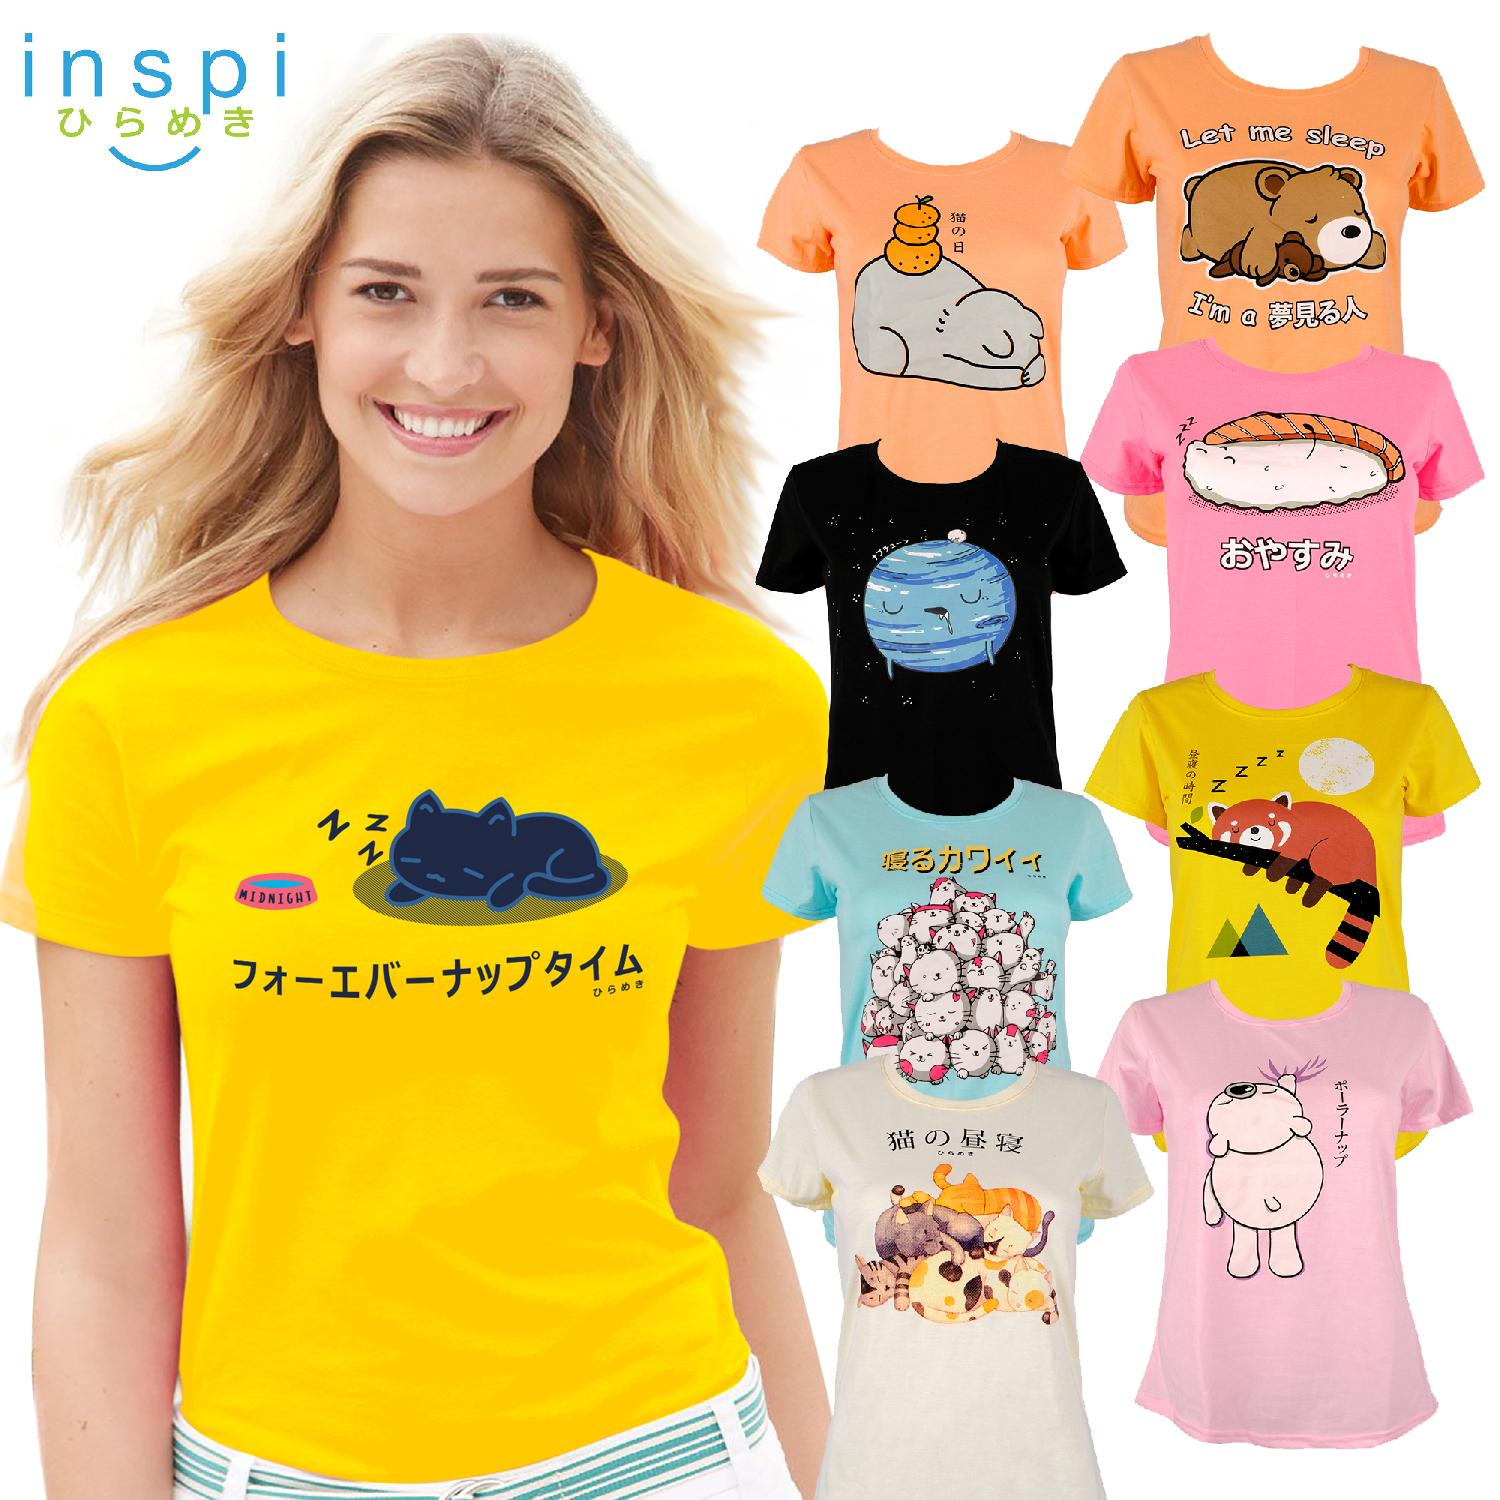 9ba7bcf86d974a INSPI Tees Ladies Nap Collection tshirt printed graphic tee Ladies t shirt  shirts women tshirts for